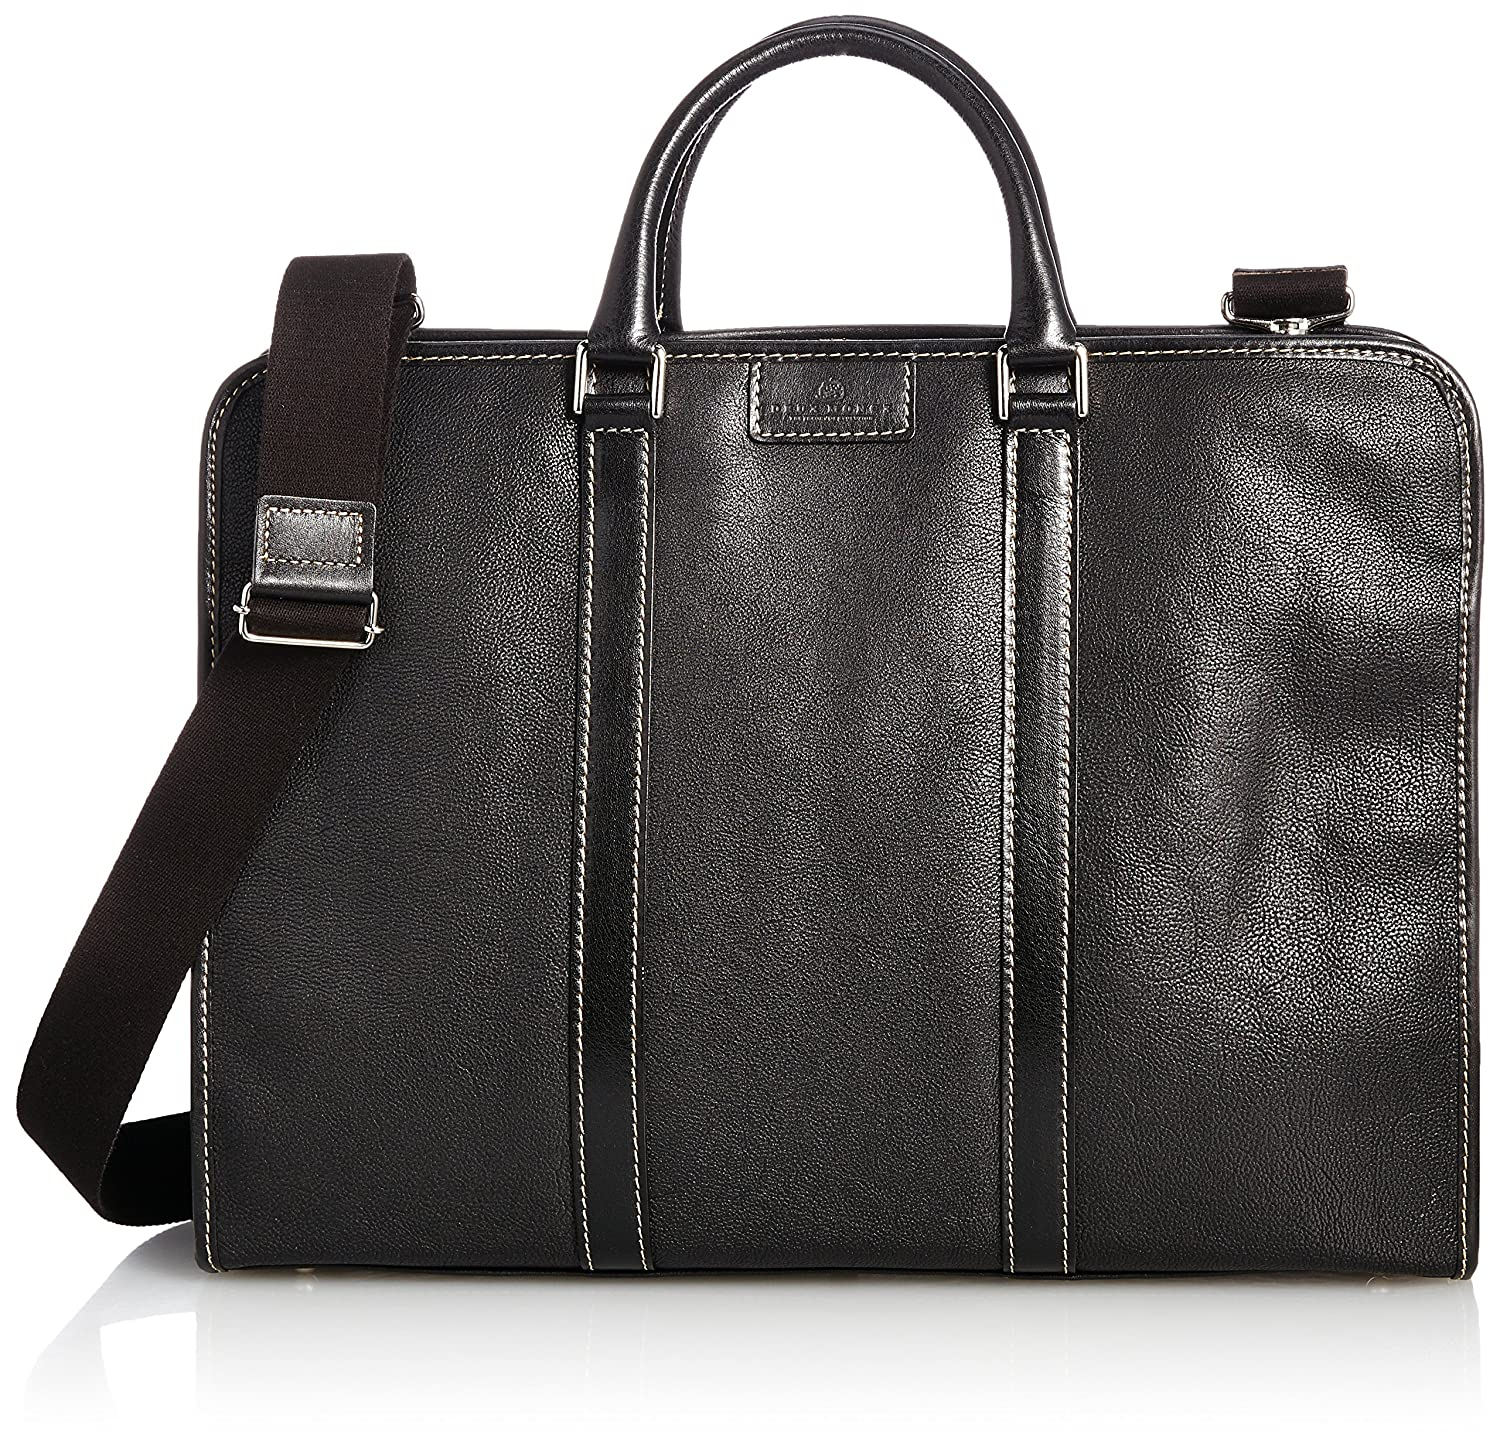 [デュモンクス] Deux Moncx CATANA BRIEFCASE L B00TO0829Sブラック